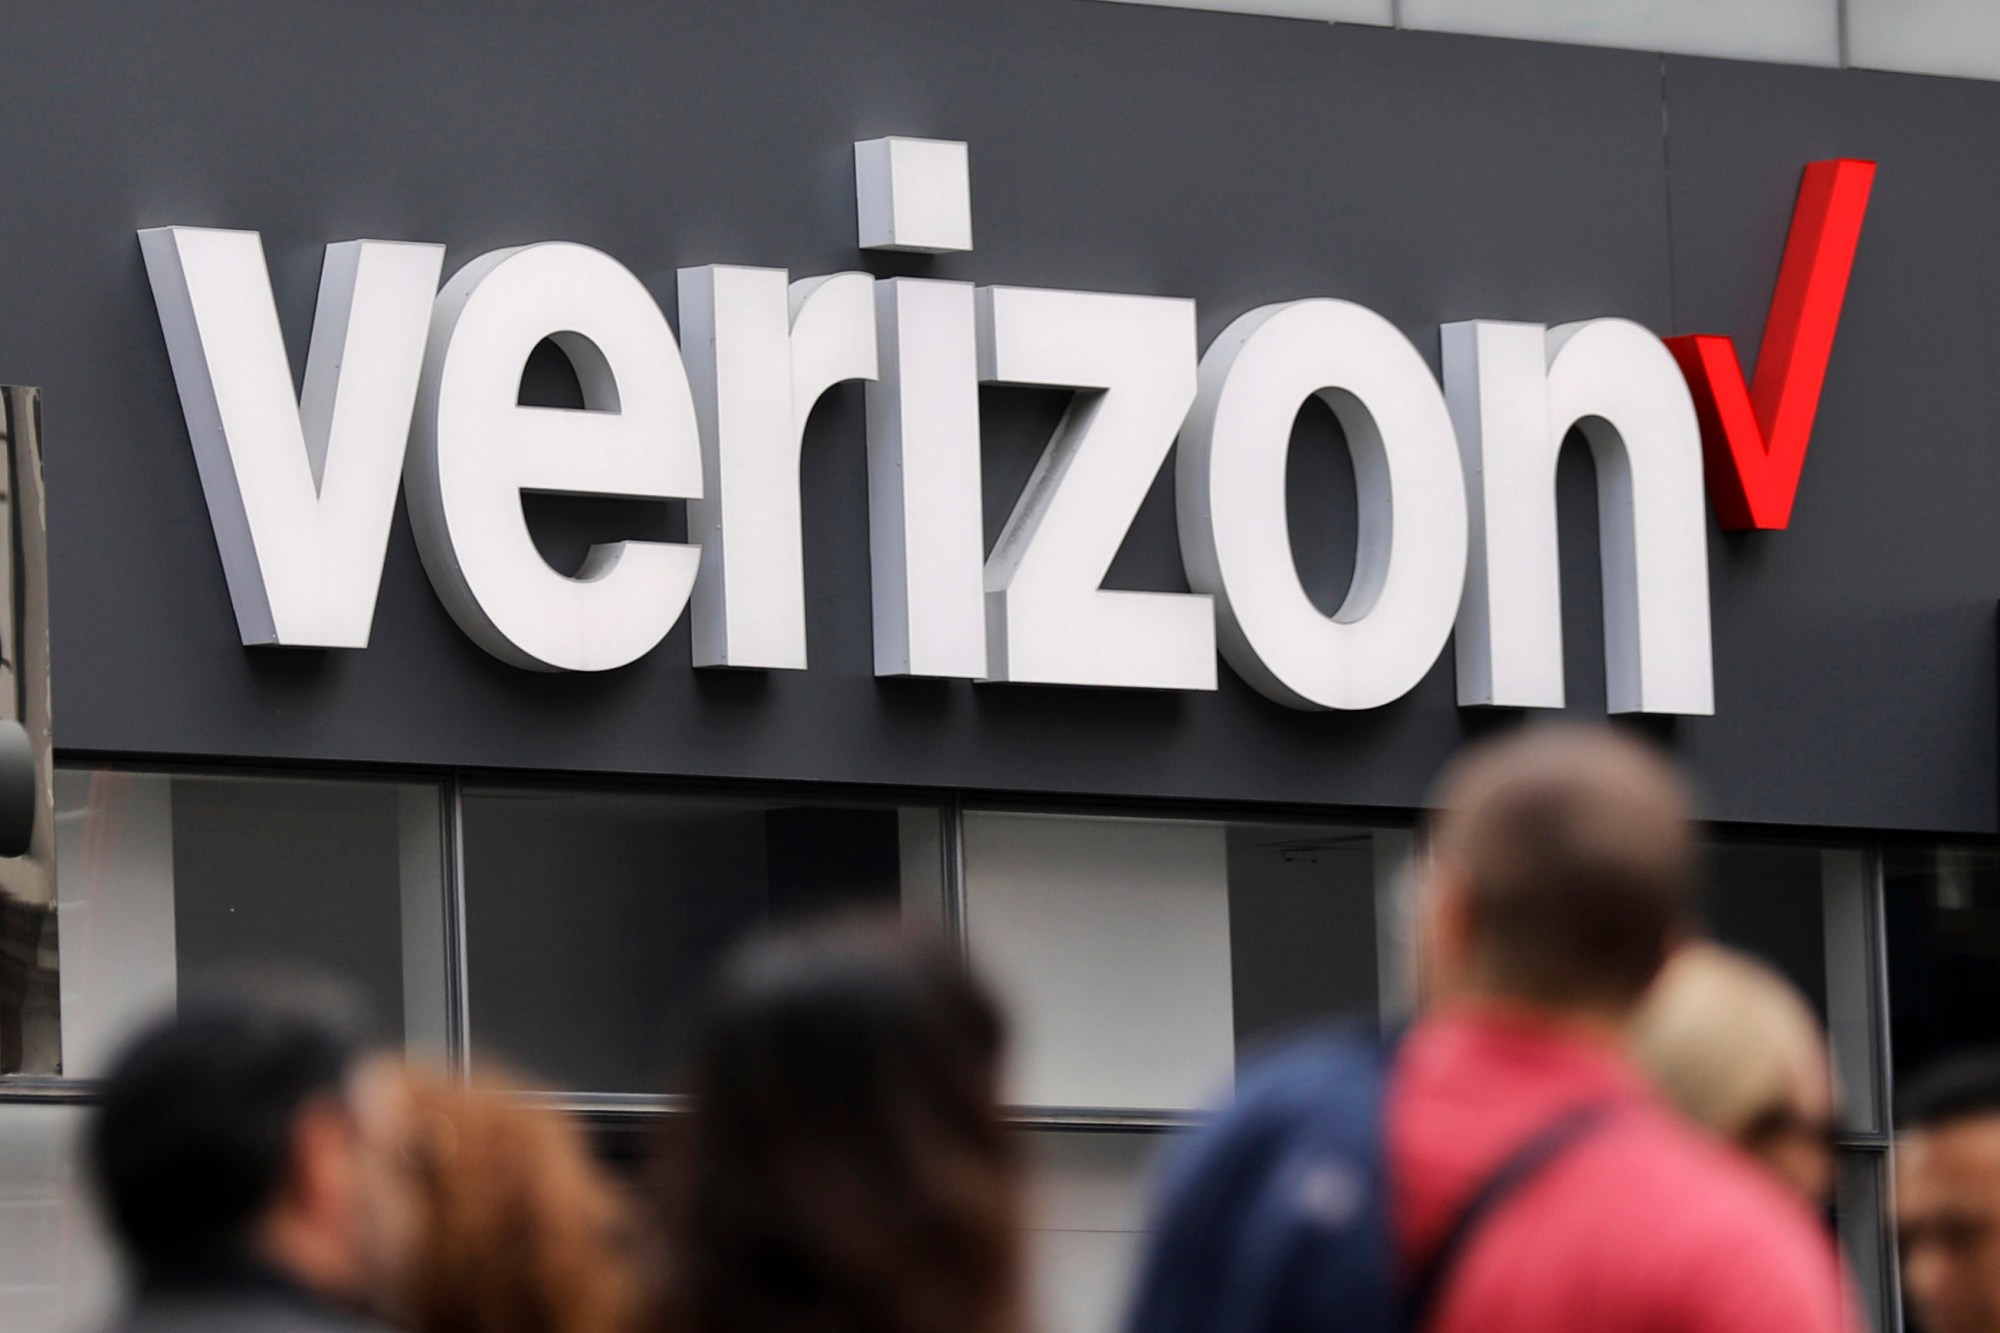 In this May 2, 2017, file photo, Verizon corporate signage is displayed on a store in Manhattan's Midtown area in New York.(AP Photo/Bebeto Matthews, File)